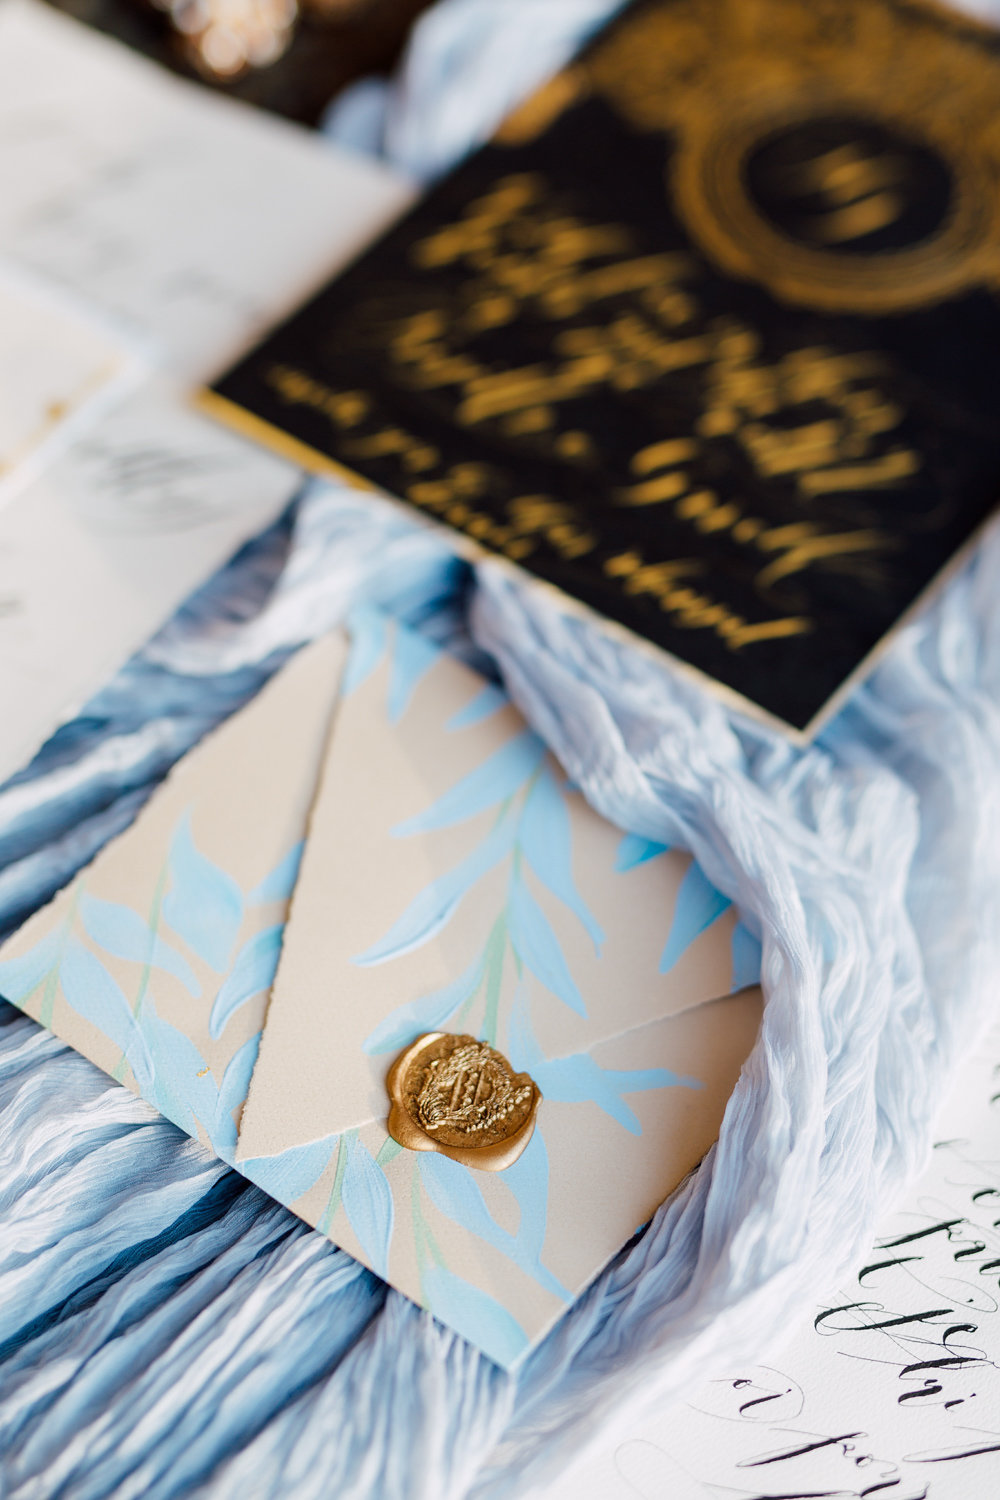 French themed wedding invitations with a pale blue envelope